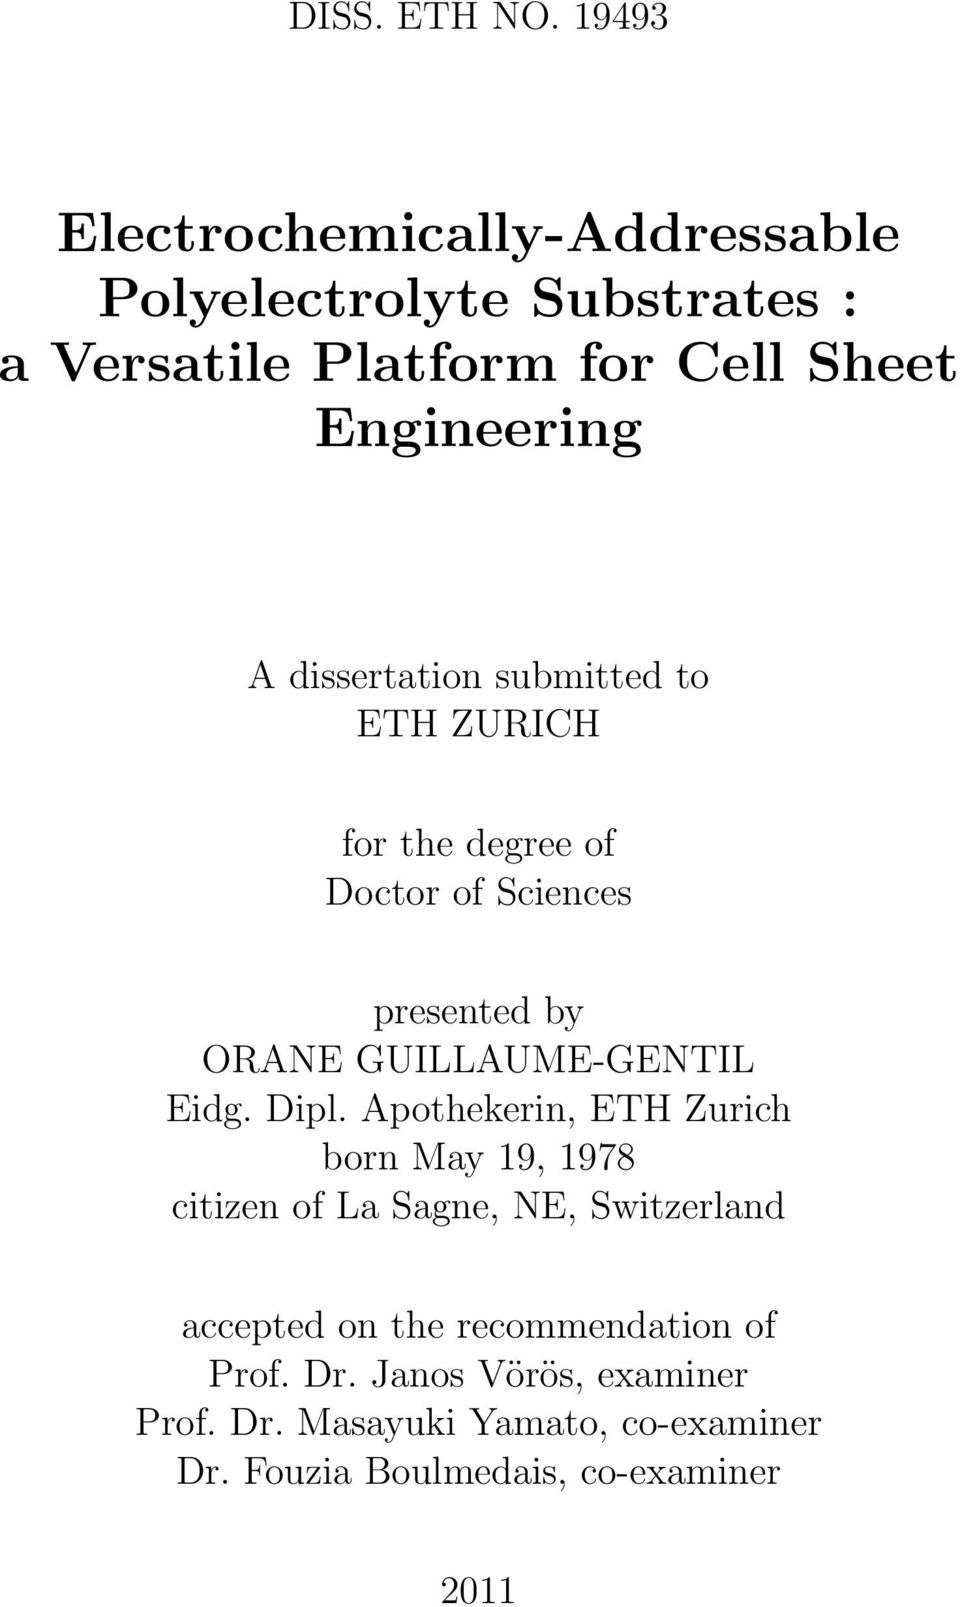 dissertation submitted to ETH ZURICH for the degree of Doctor of Sciences presented by ORANE GUILLAUME-GENTIL Eidg.